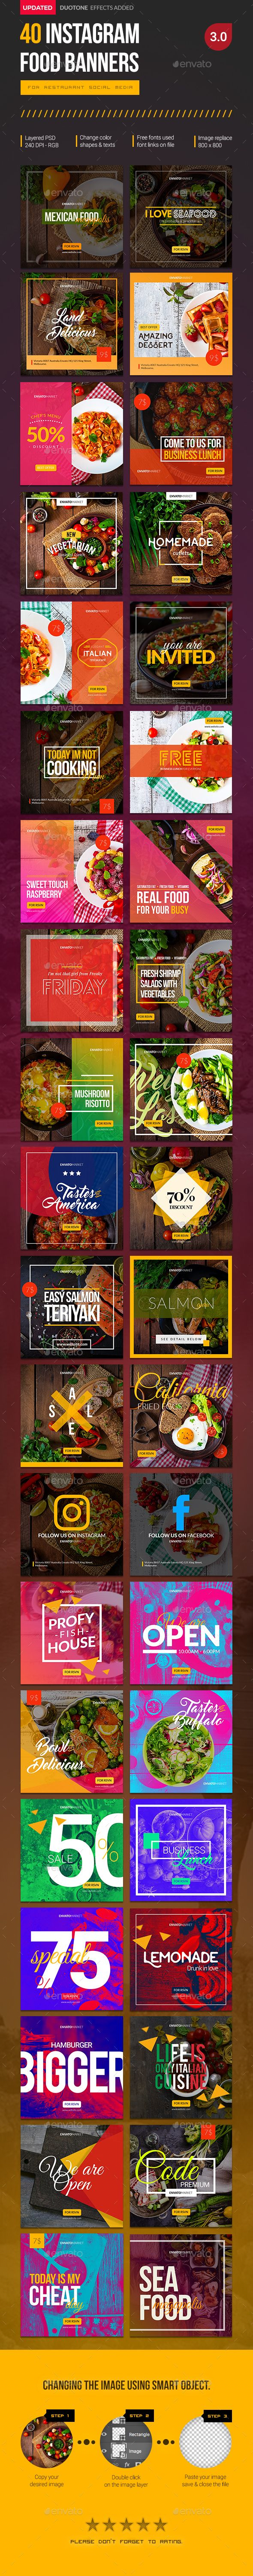 Instagram food banners for restaurant pages. Can be used for various food…